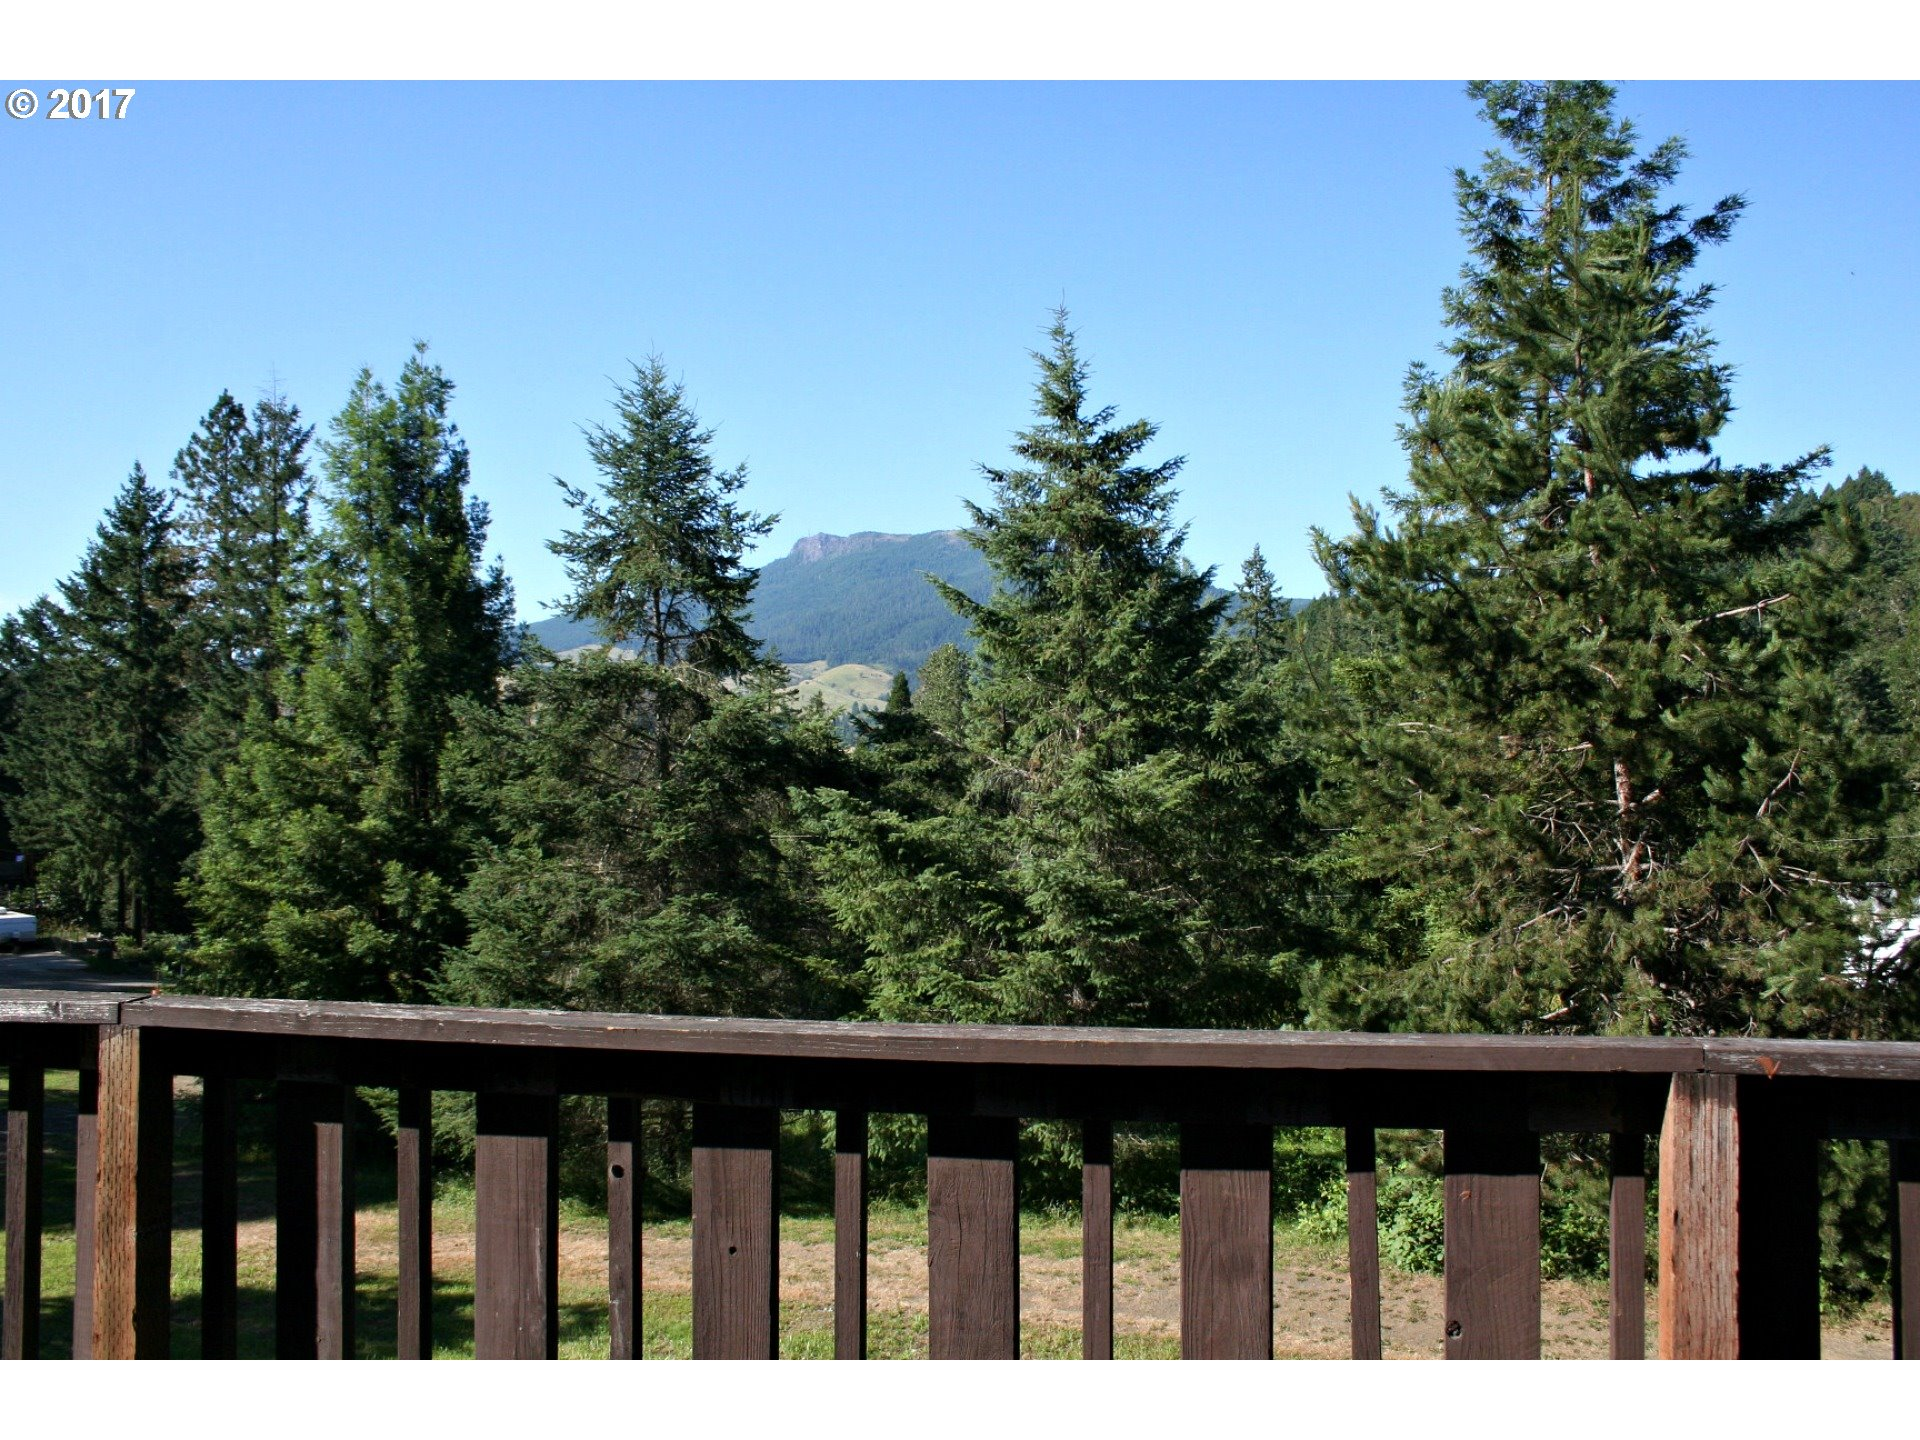 583 TERRACE DR Glide, OR 97443 - MLS #: 17650590